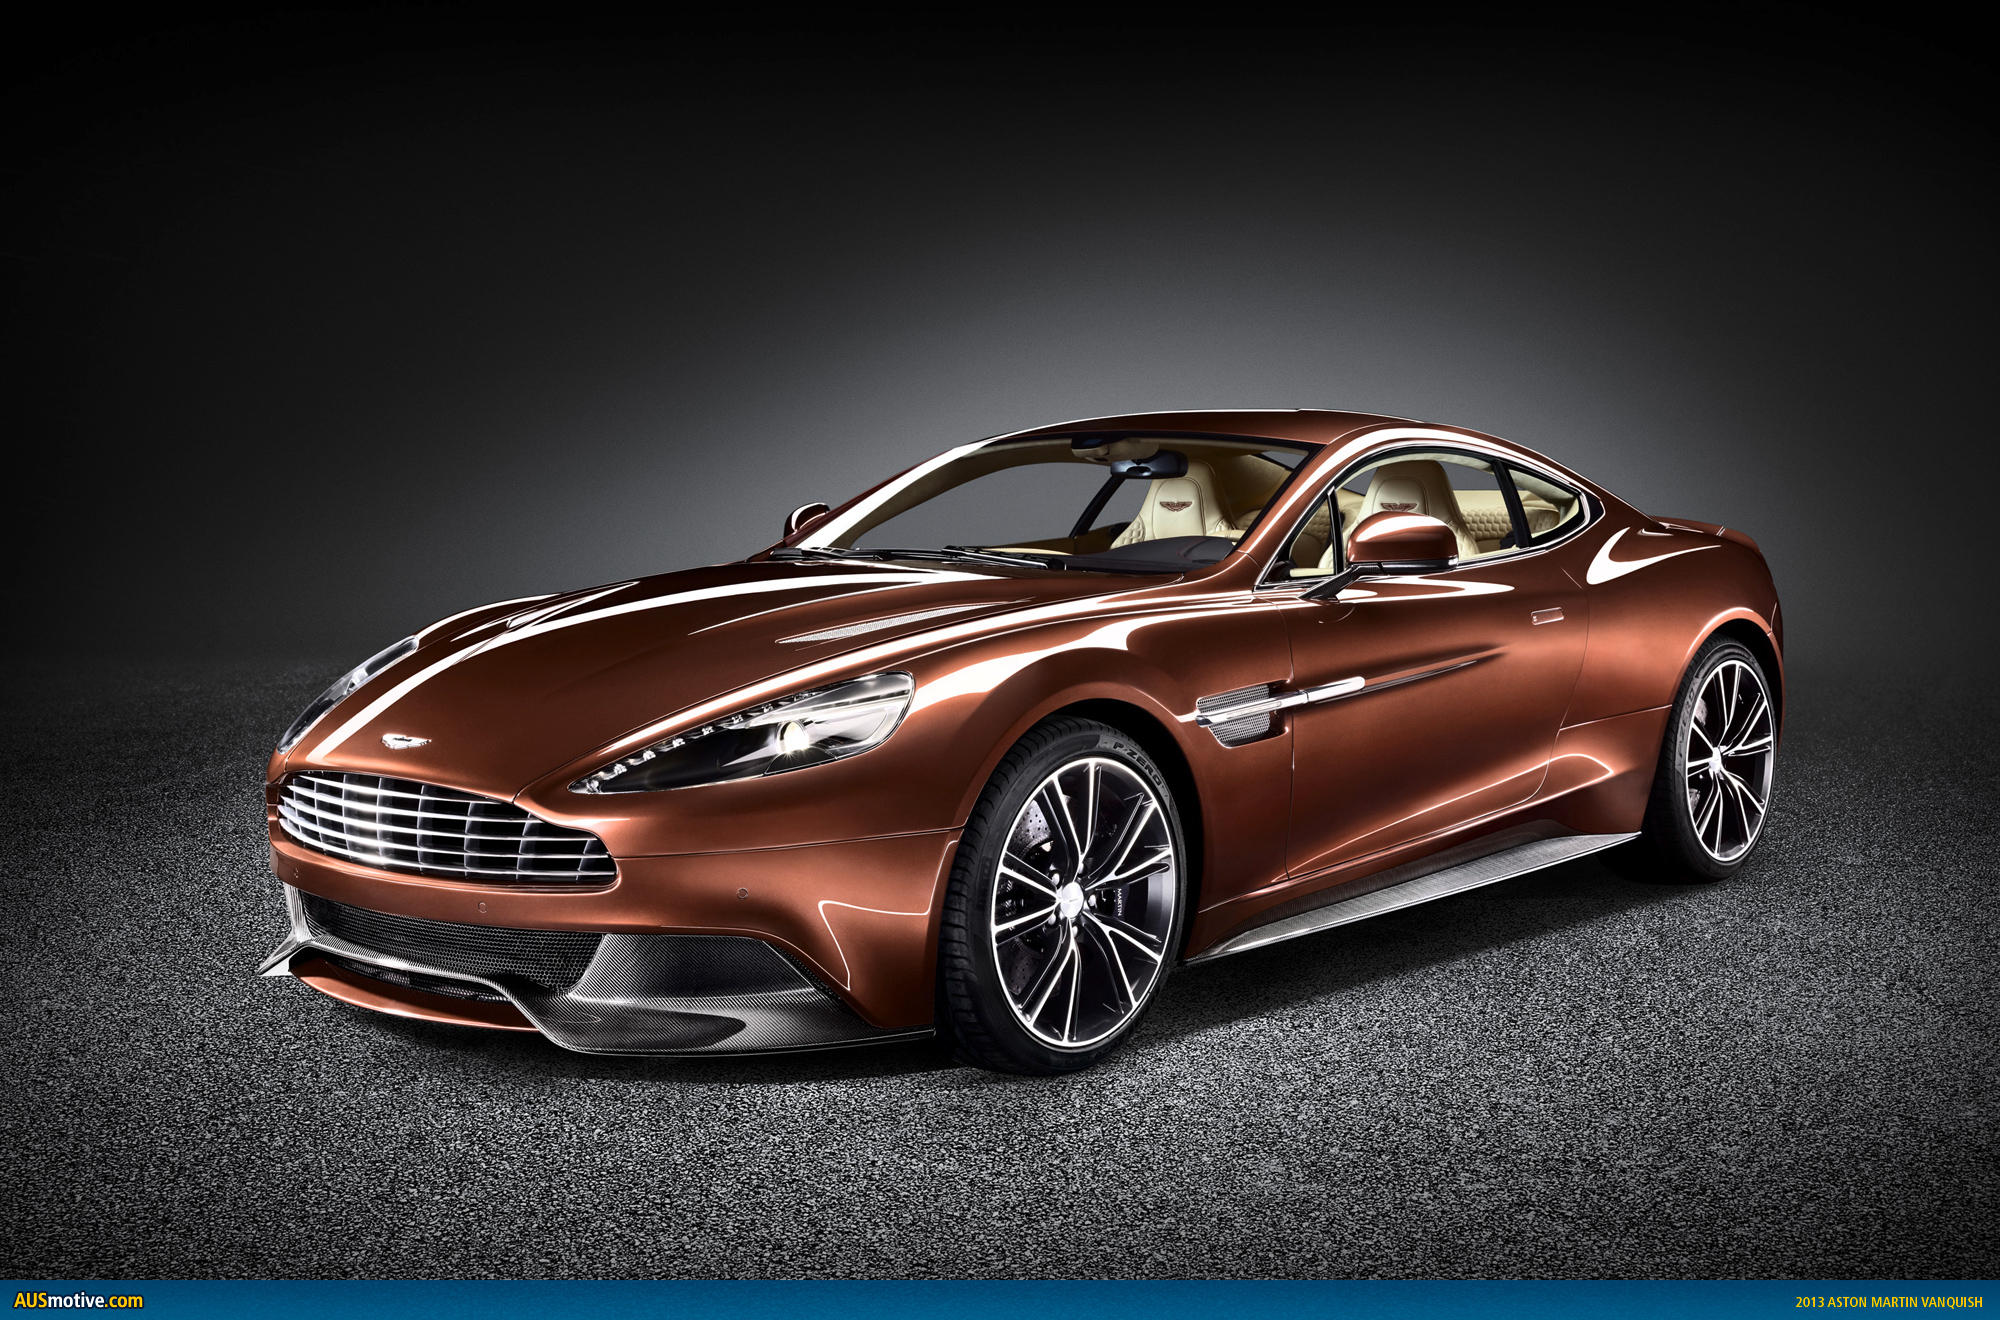 AUSmotive.com » Aston Martin Vanquish Revealed